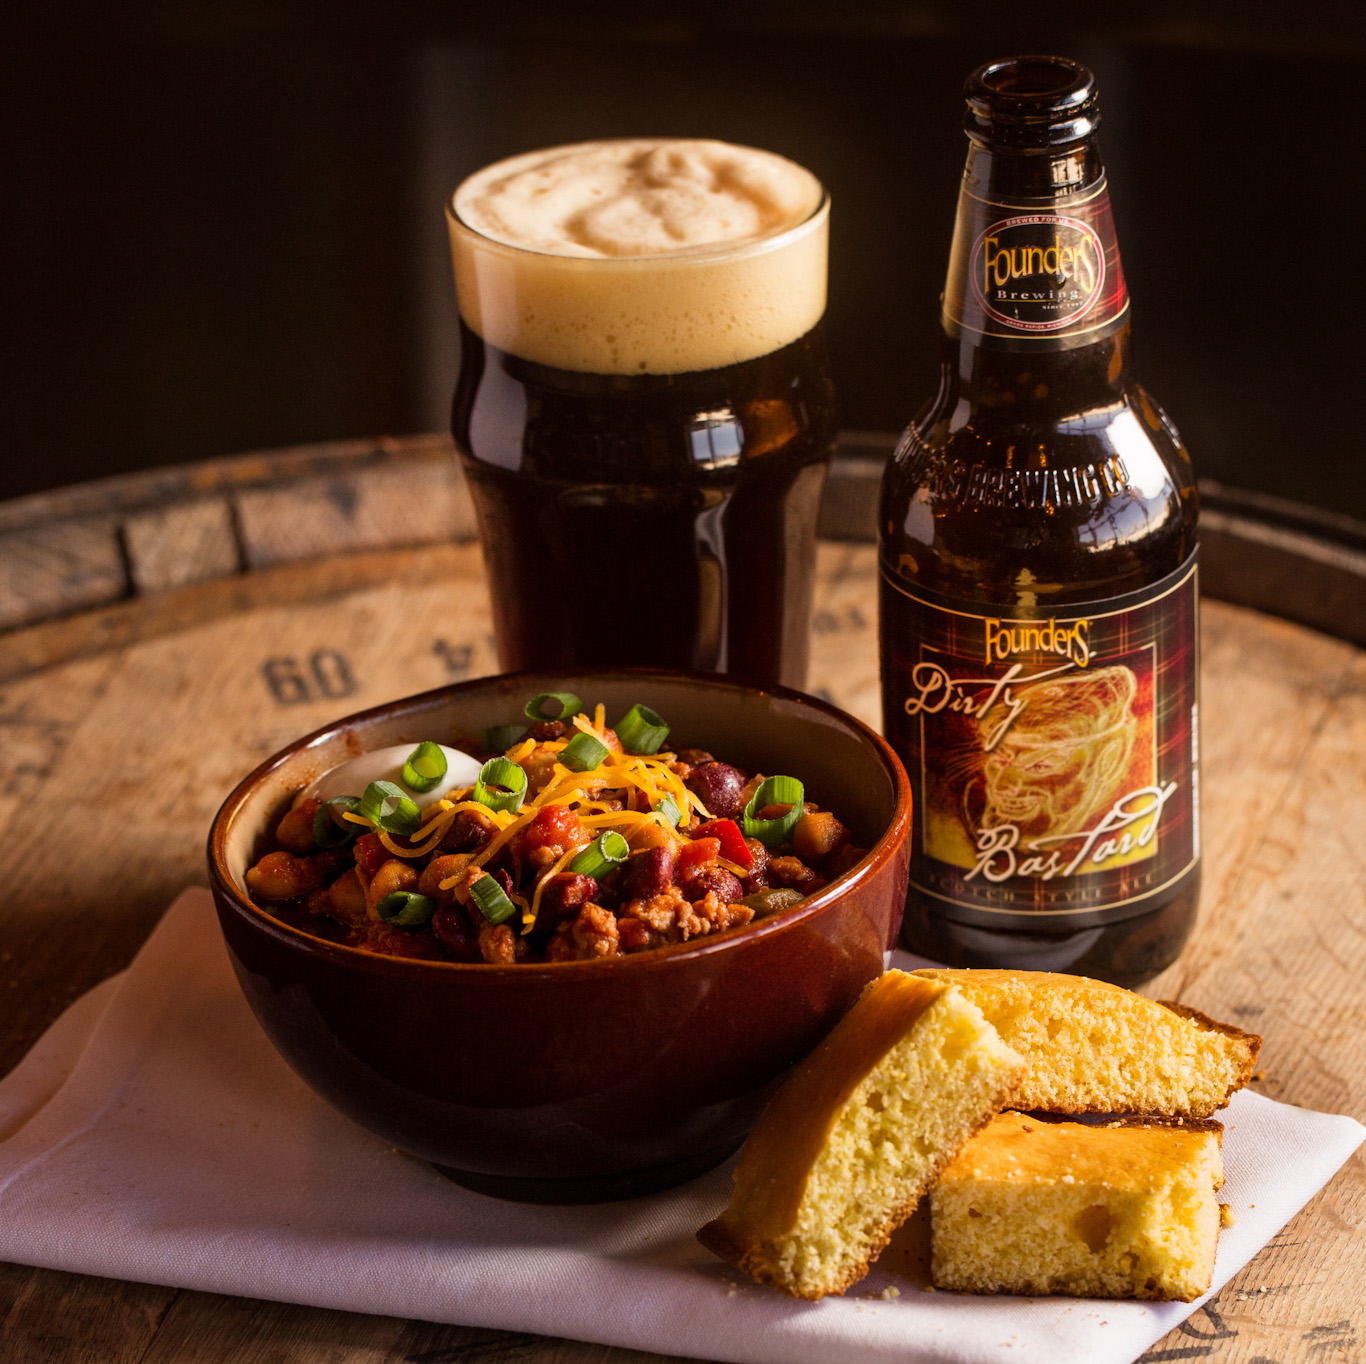 Founders Dirty bastard with chili and cornbread